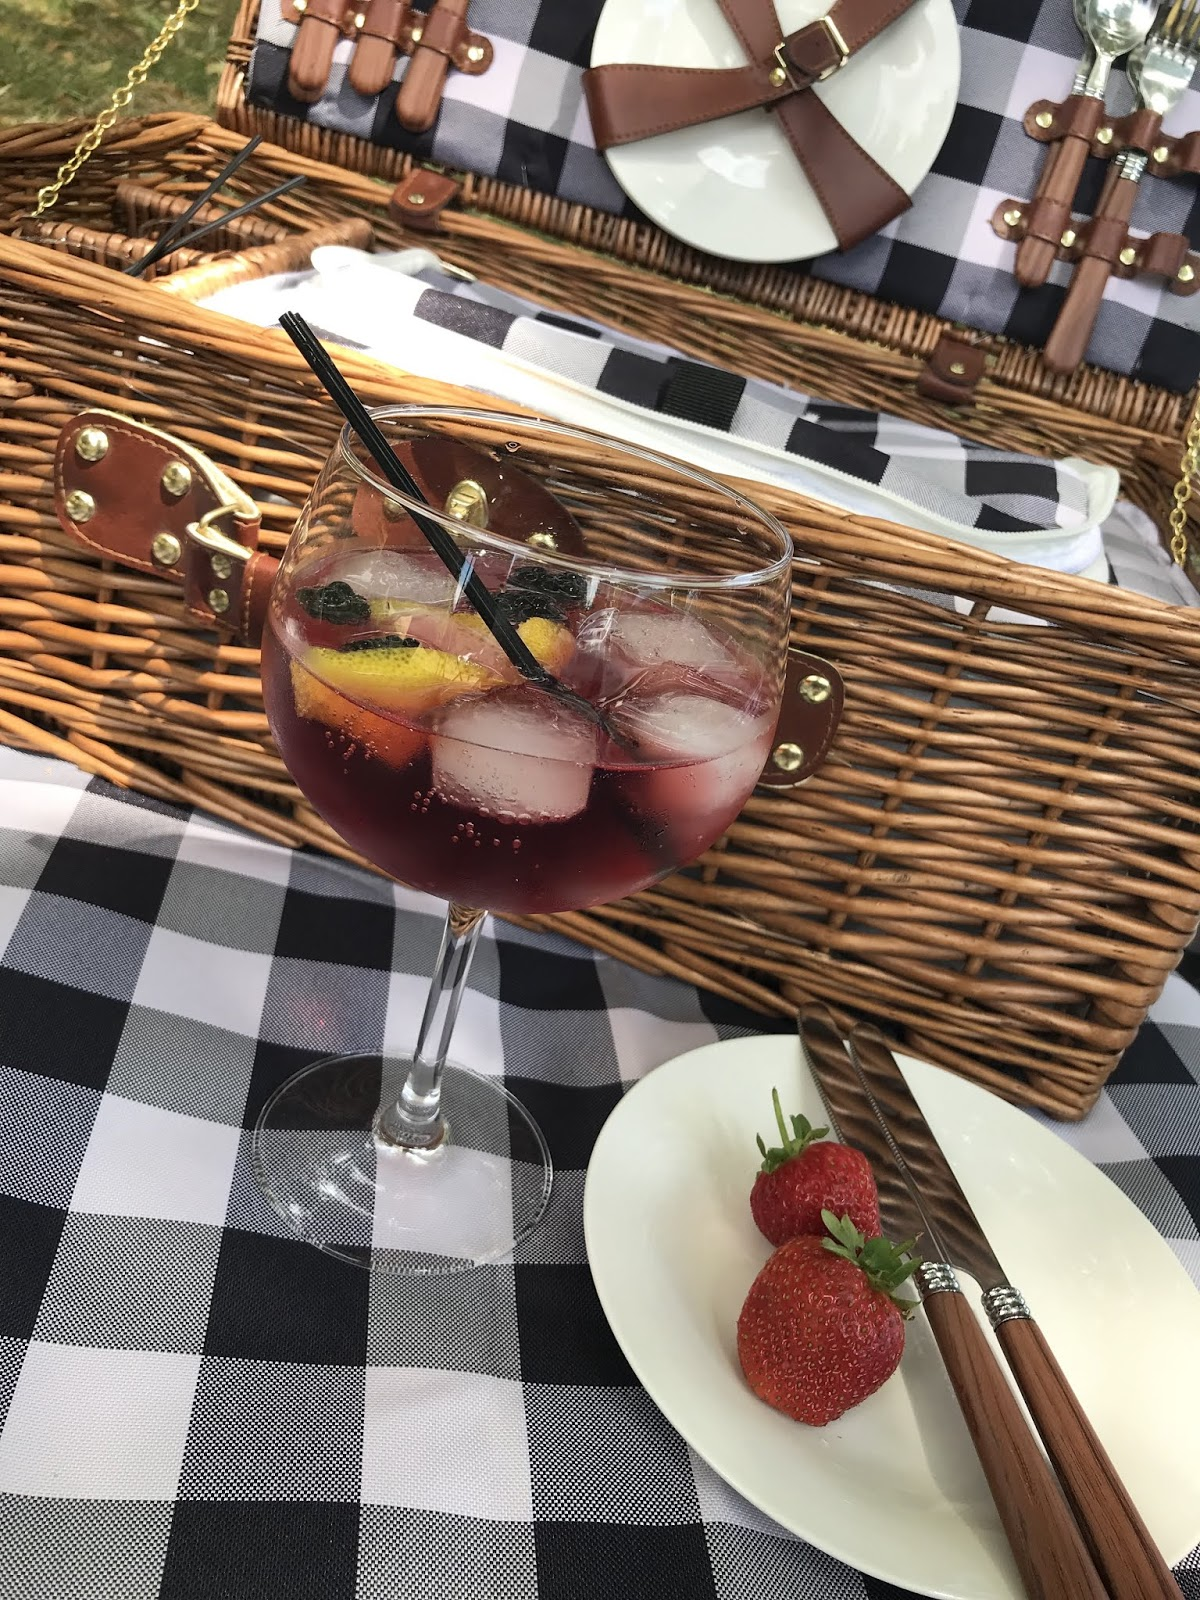 Gin and tonic picnic at Rufford Abbey country park